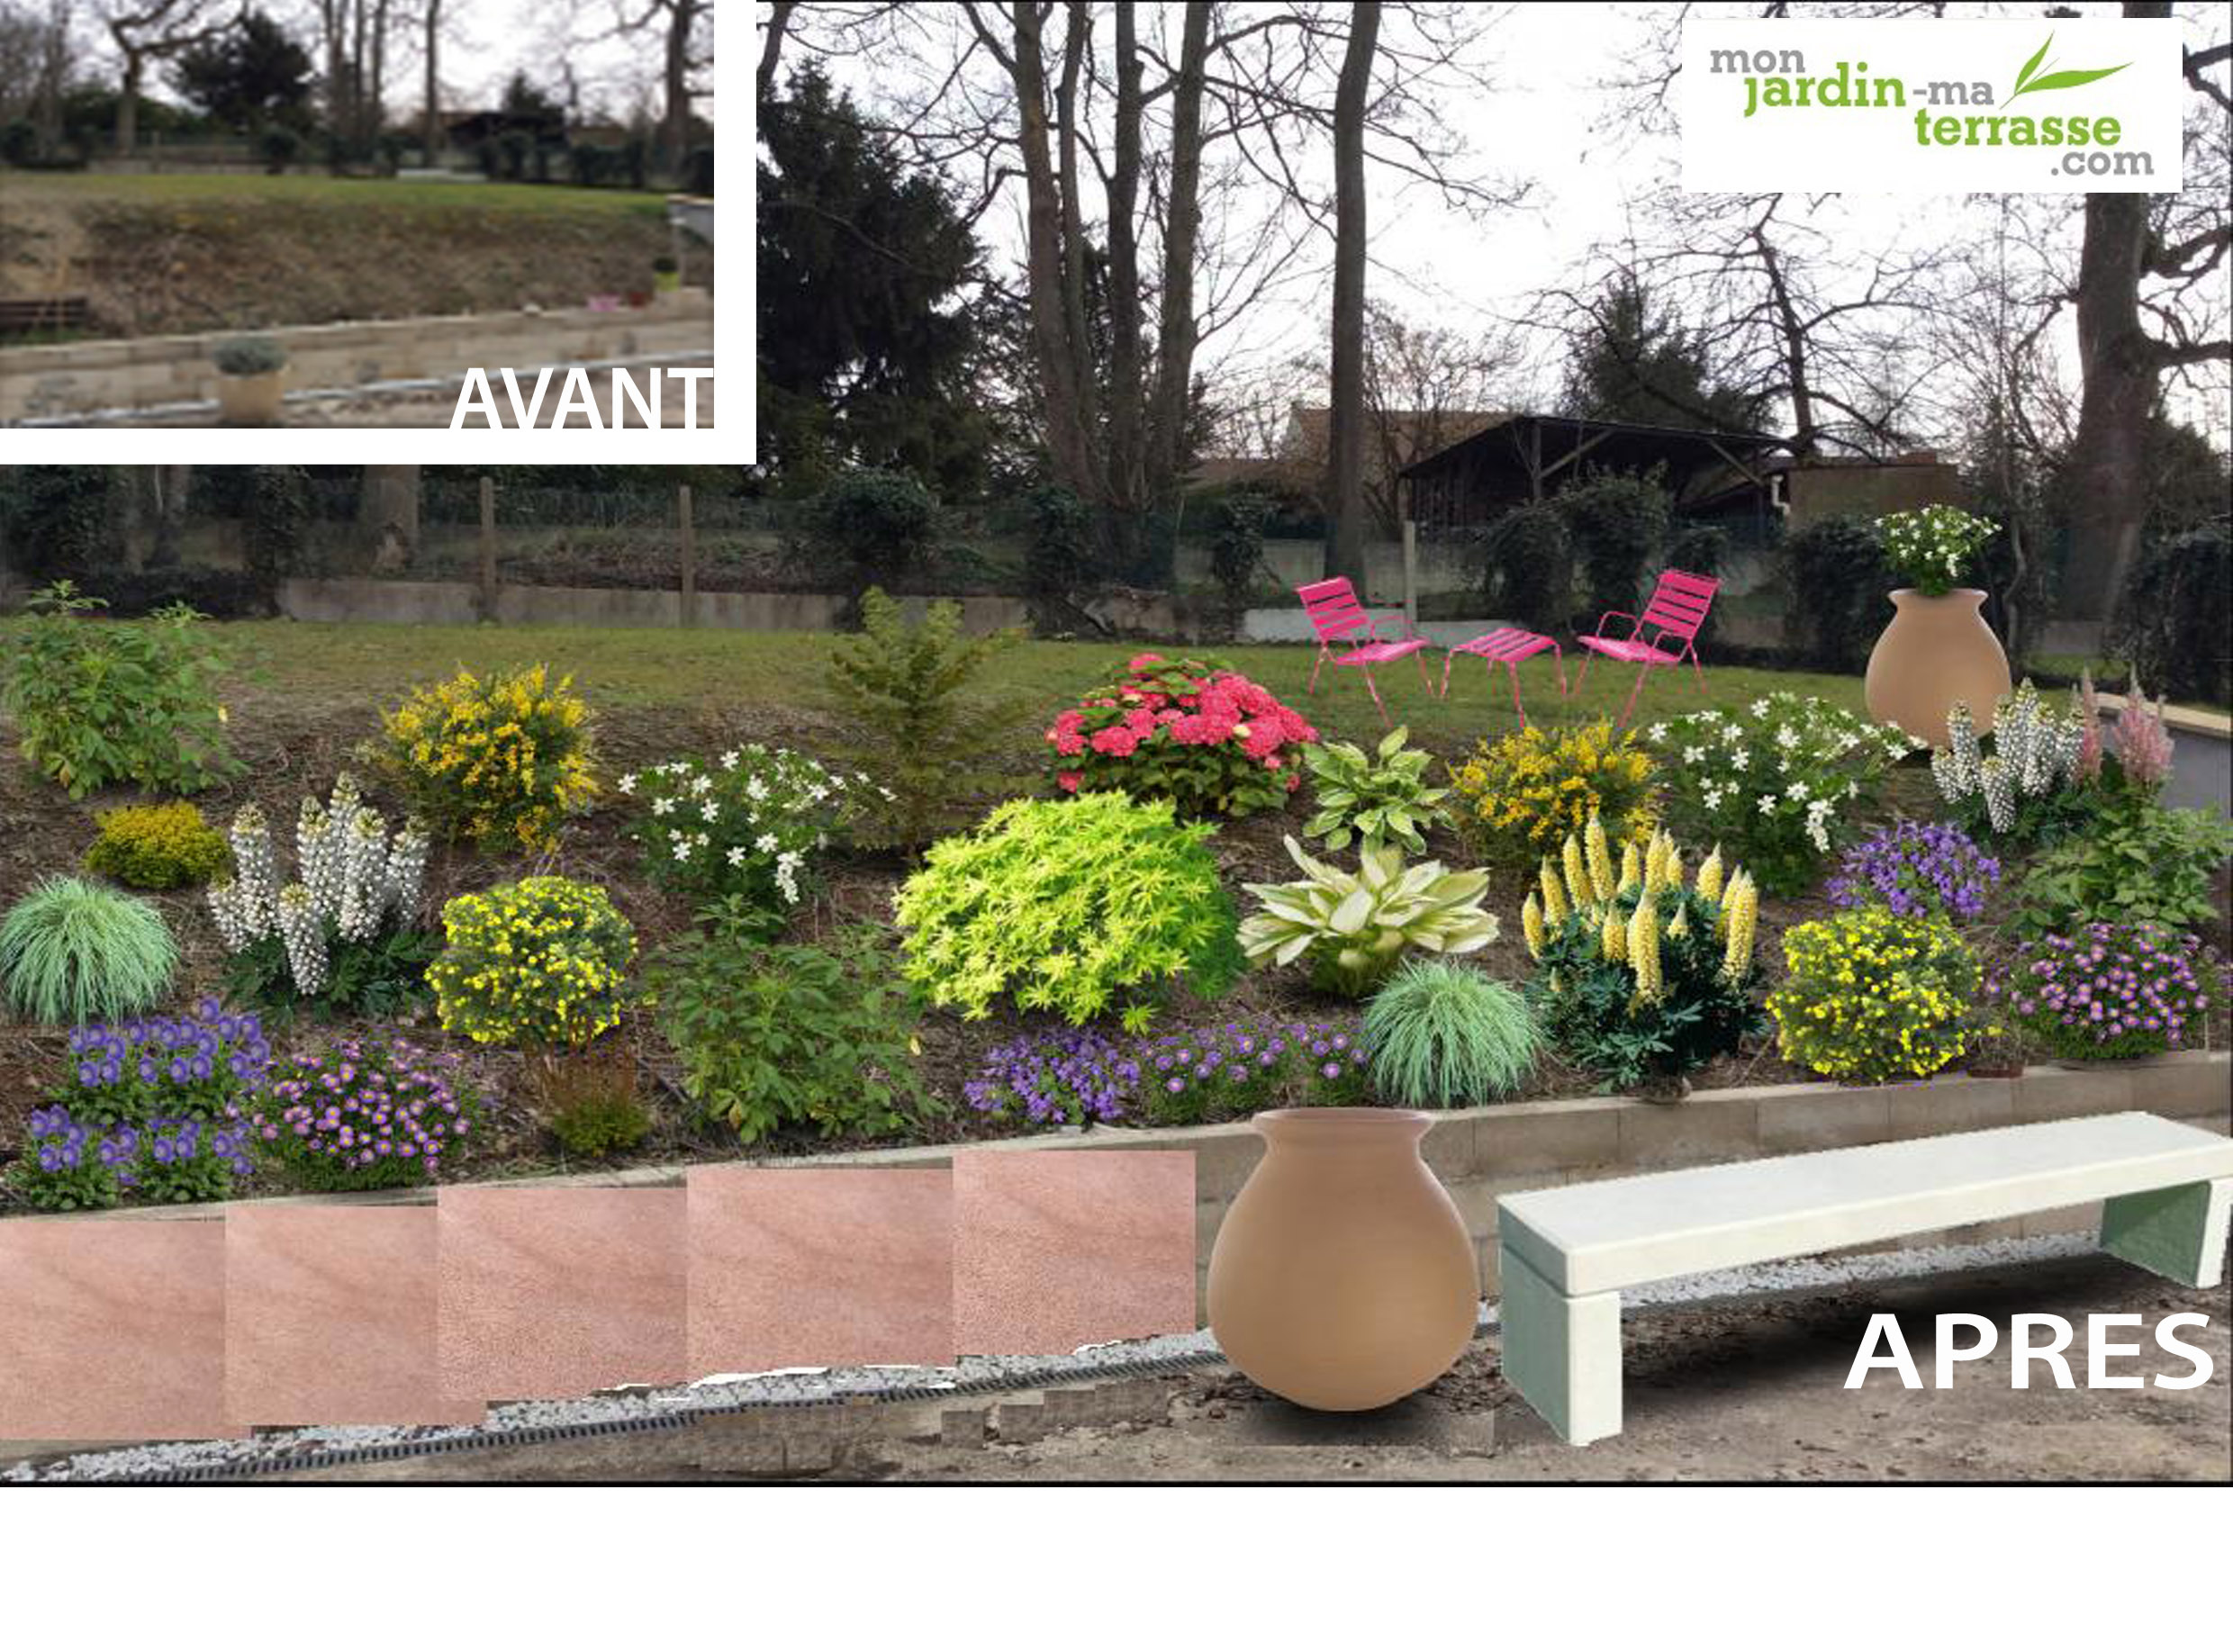 comment amenager une rocaille fashion designs With superb amenager un jardin en pente 0 1001 idees et conseils pour amenager une rocaille fleurie